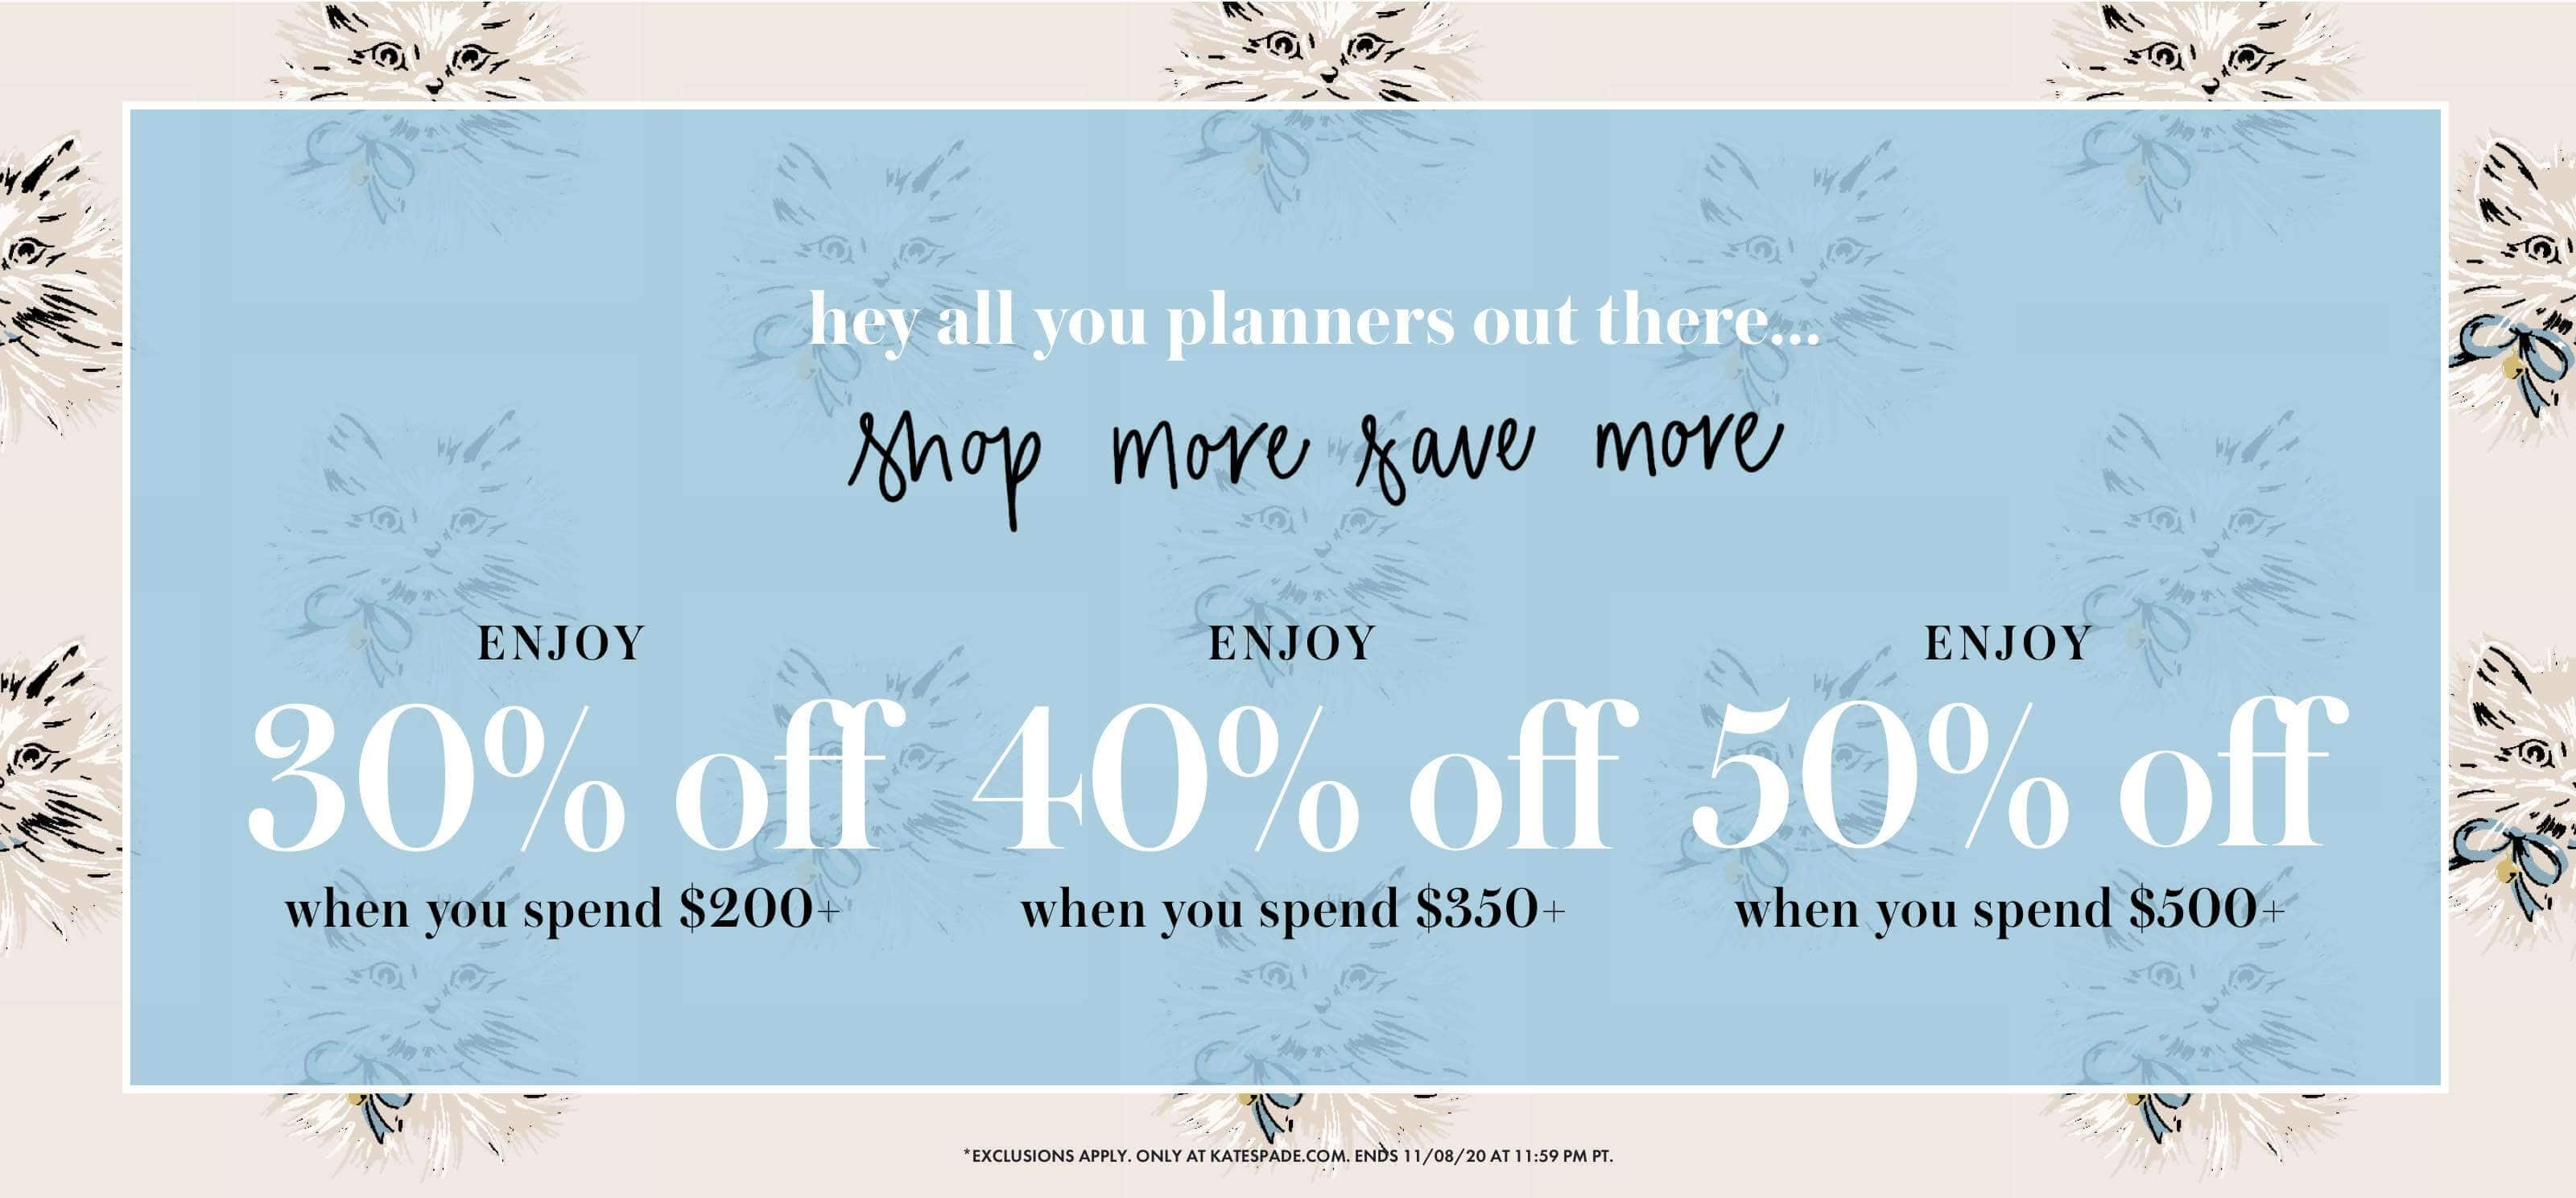 hey all you planners out there... shop more save more. ENJOY 30% off when you spend $200+. ENJOY 40% off when you spend $350+. ENJOY 50% off when you spend $500+. *exclusions apply. only at katespade.com. ends 11/08/20 at 11:59 pm pt.